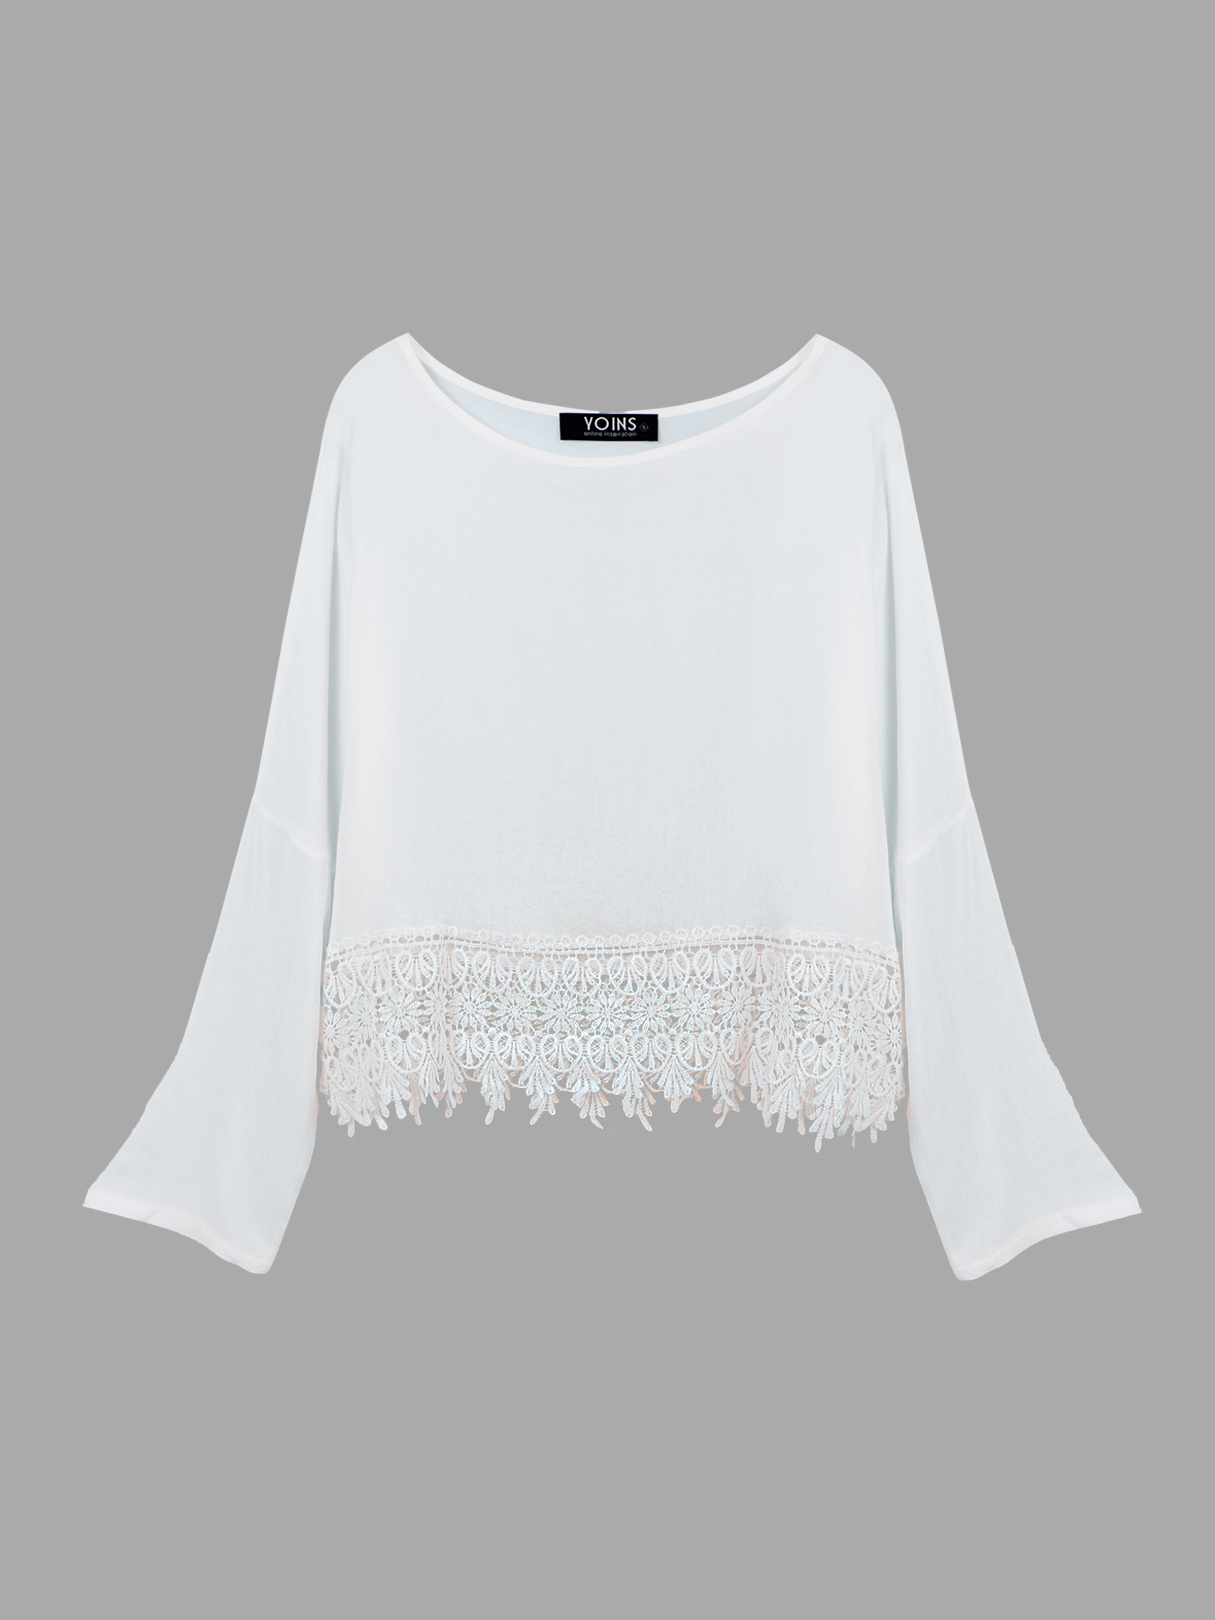 See-through Cropped Top with Crochet Lace Hem